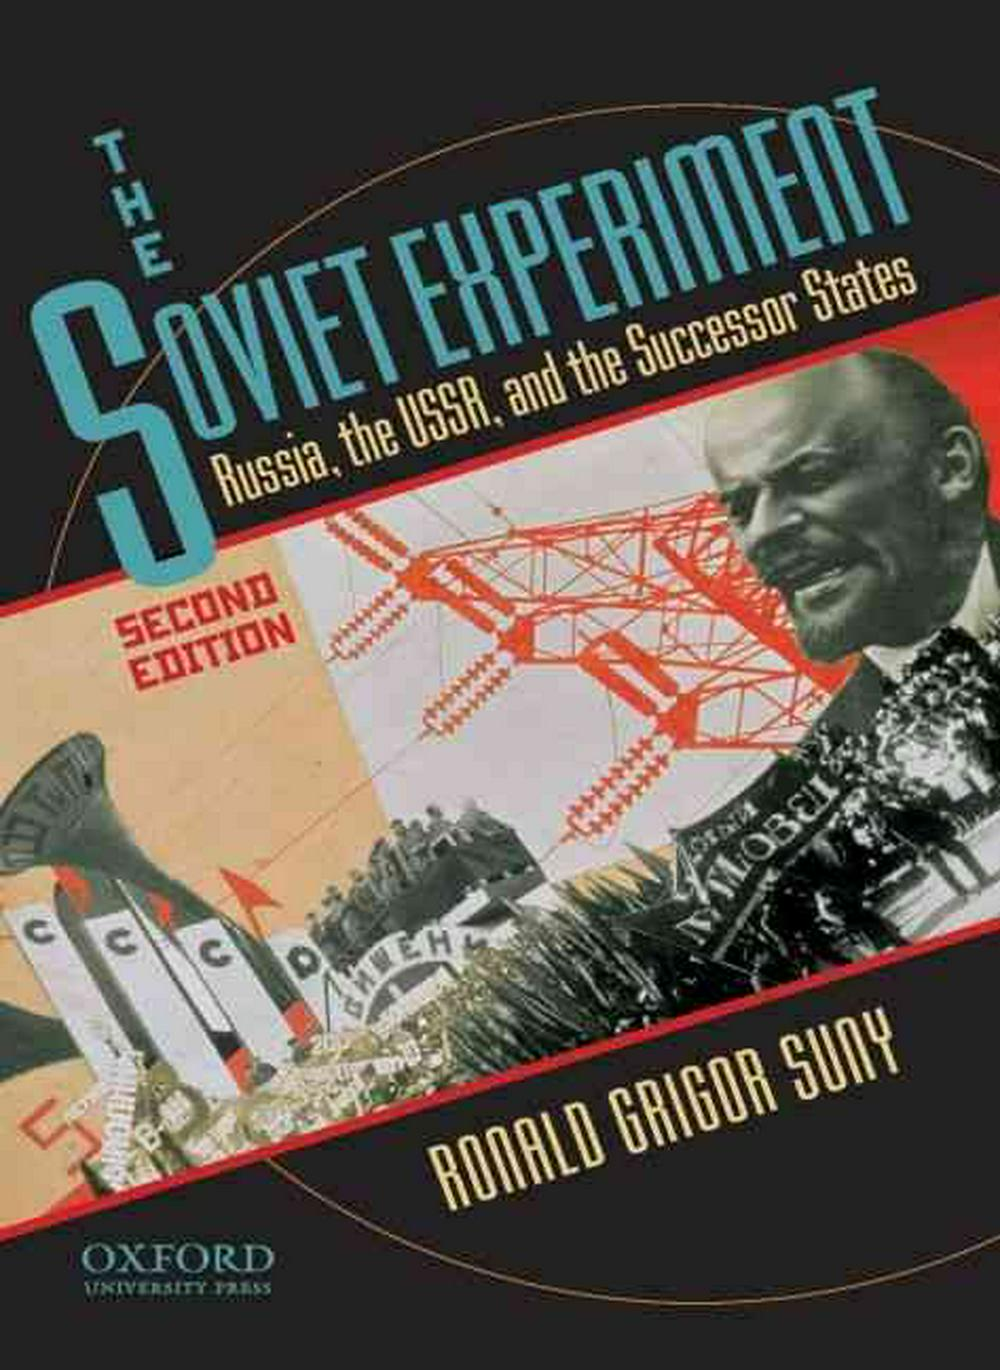 The Soviet Experiment: Russia, the USSR, and the Successor States